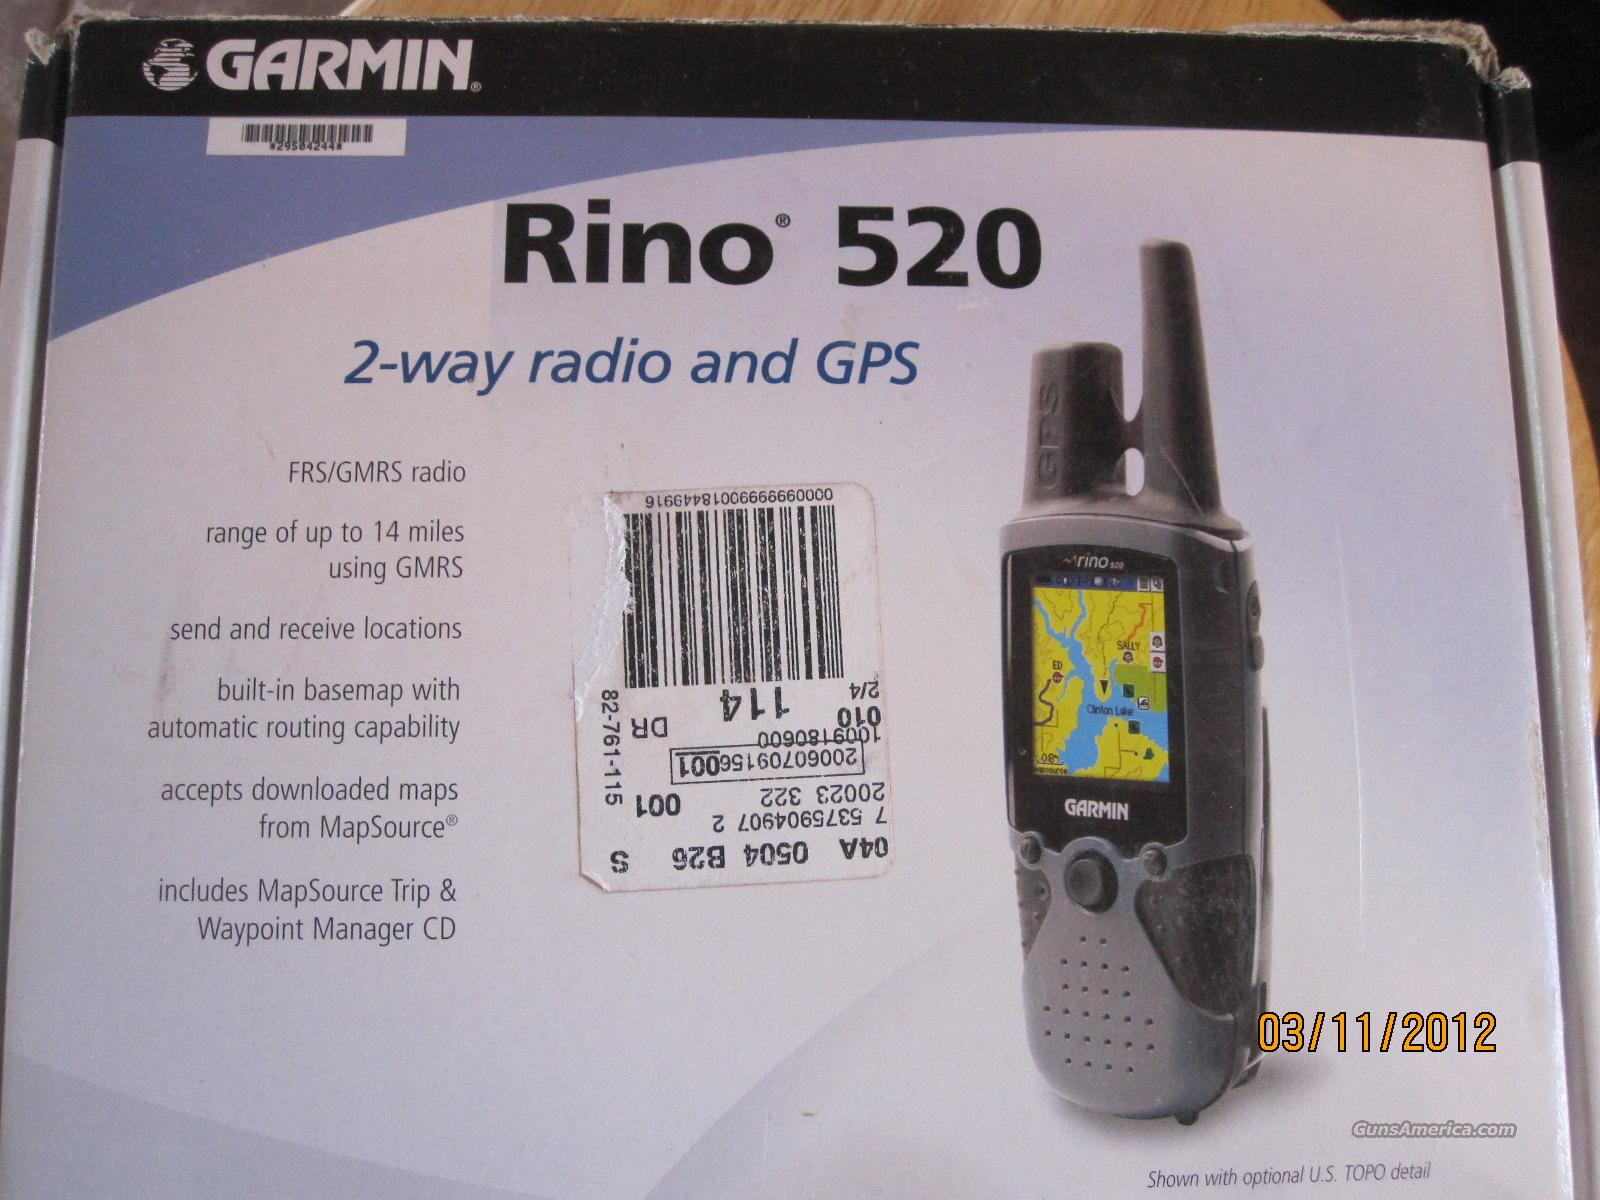 Garmin  Rino 520 GPS 2- Way radio and GPS Used   Non-Guns > Electronics